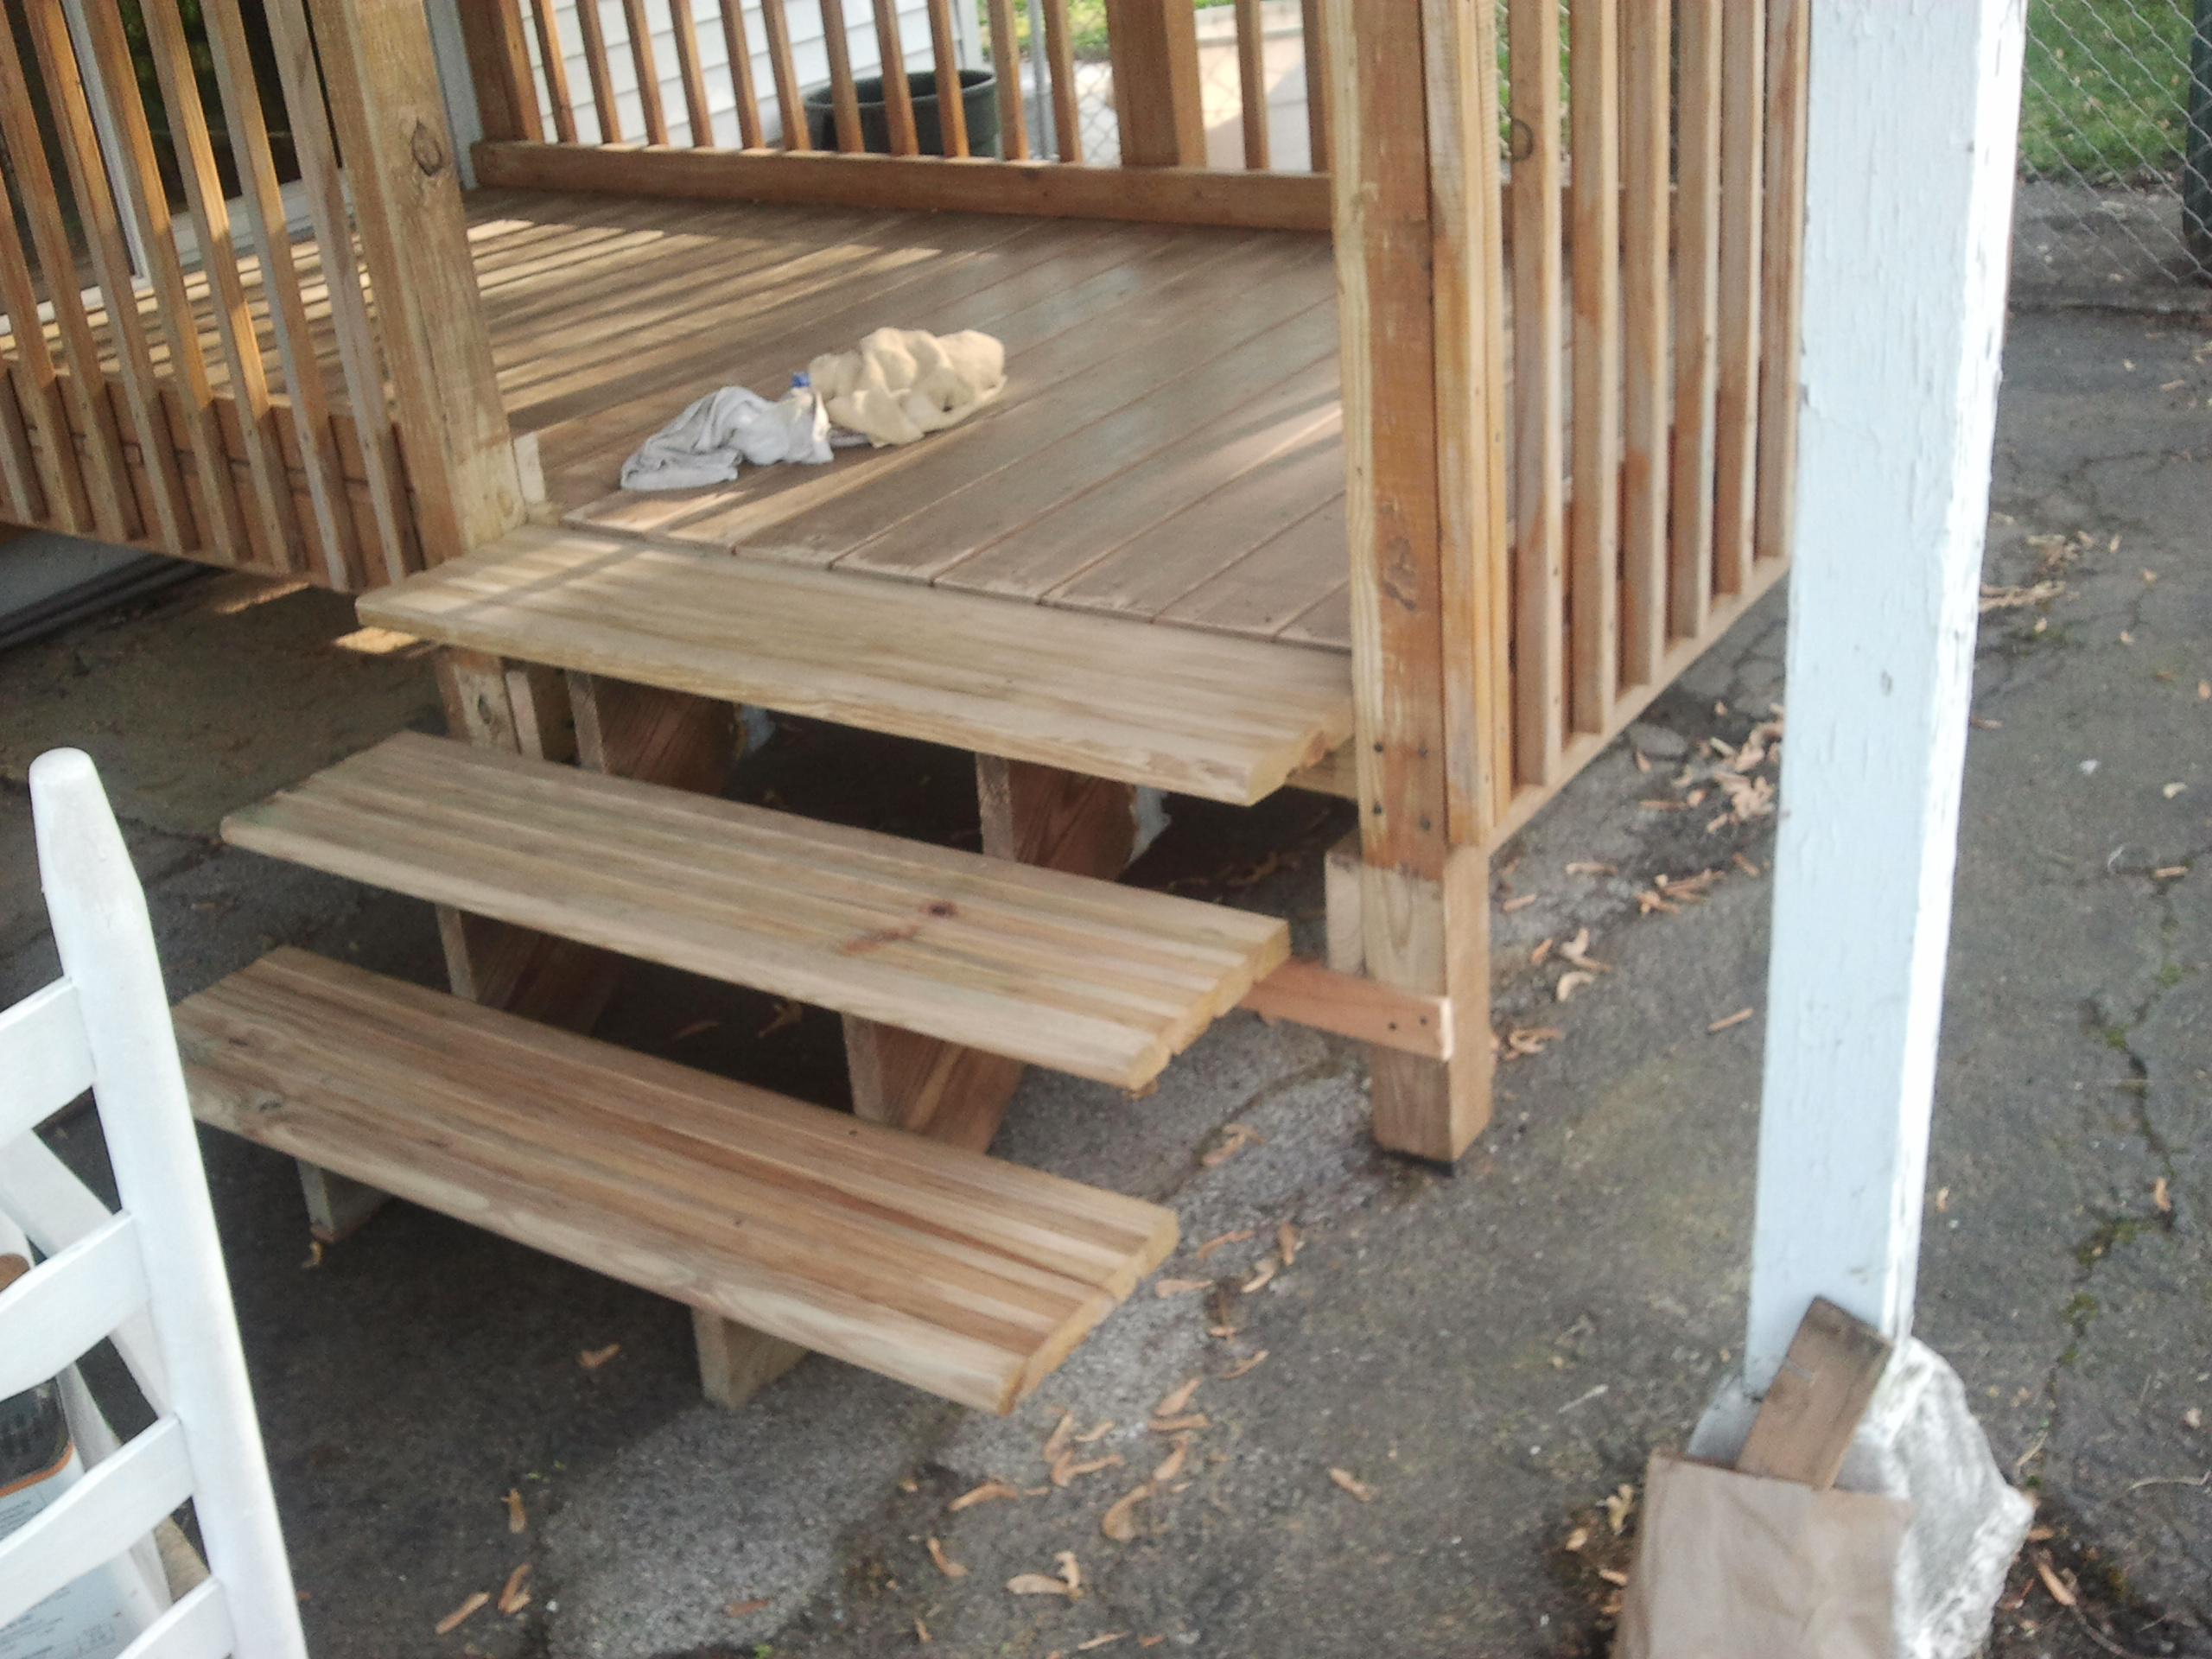 mrt-deck-stairs-stained-nj